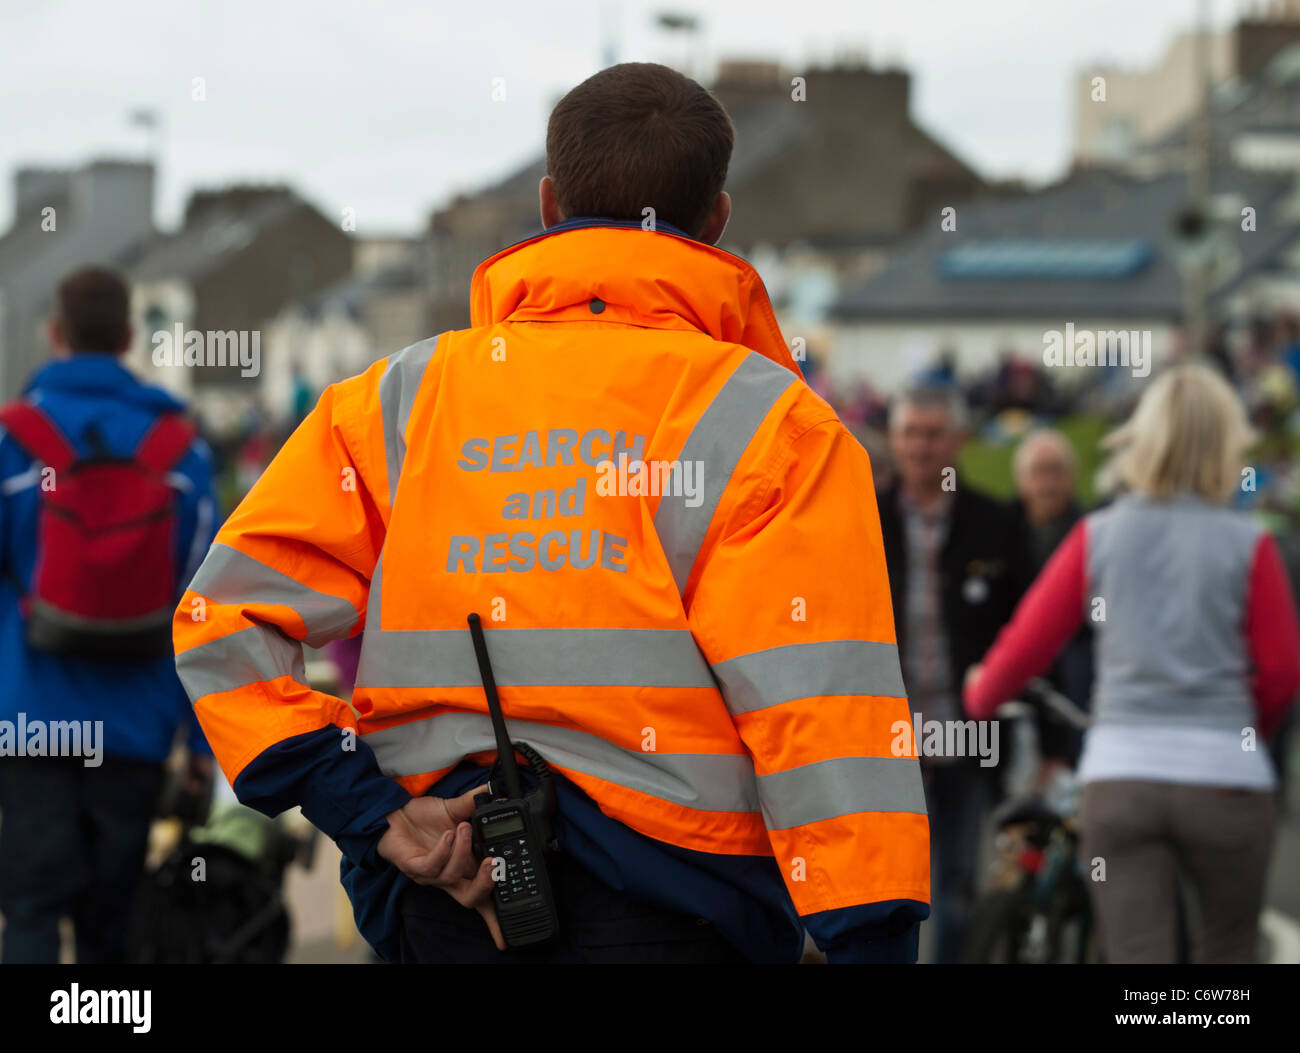 Search And Rescue Team Member In High Visibility Jacket